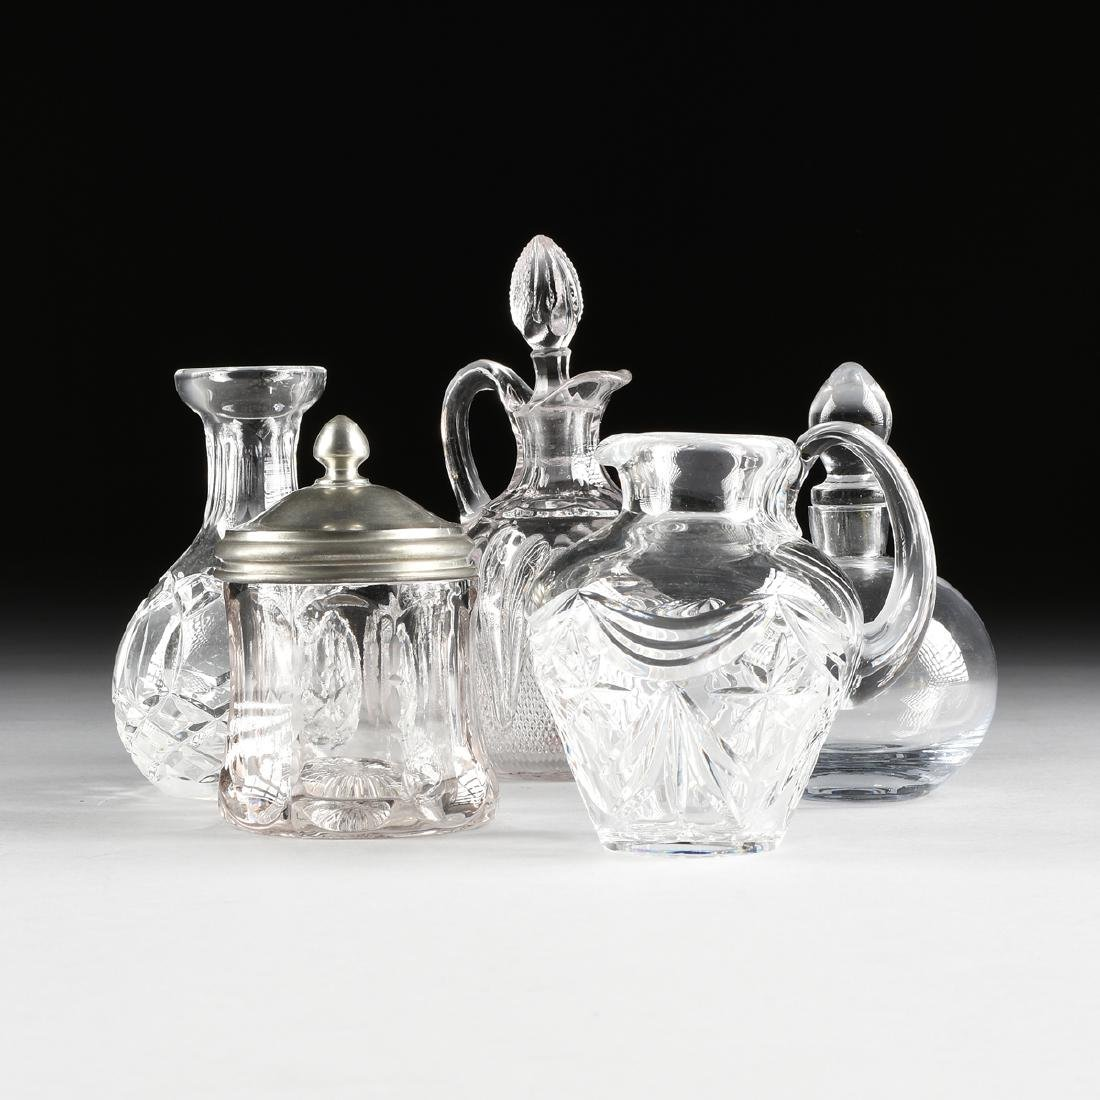 A GROUP OF FIVE CLEAR CRYSTAL TABLE WARES, LATE 20TH